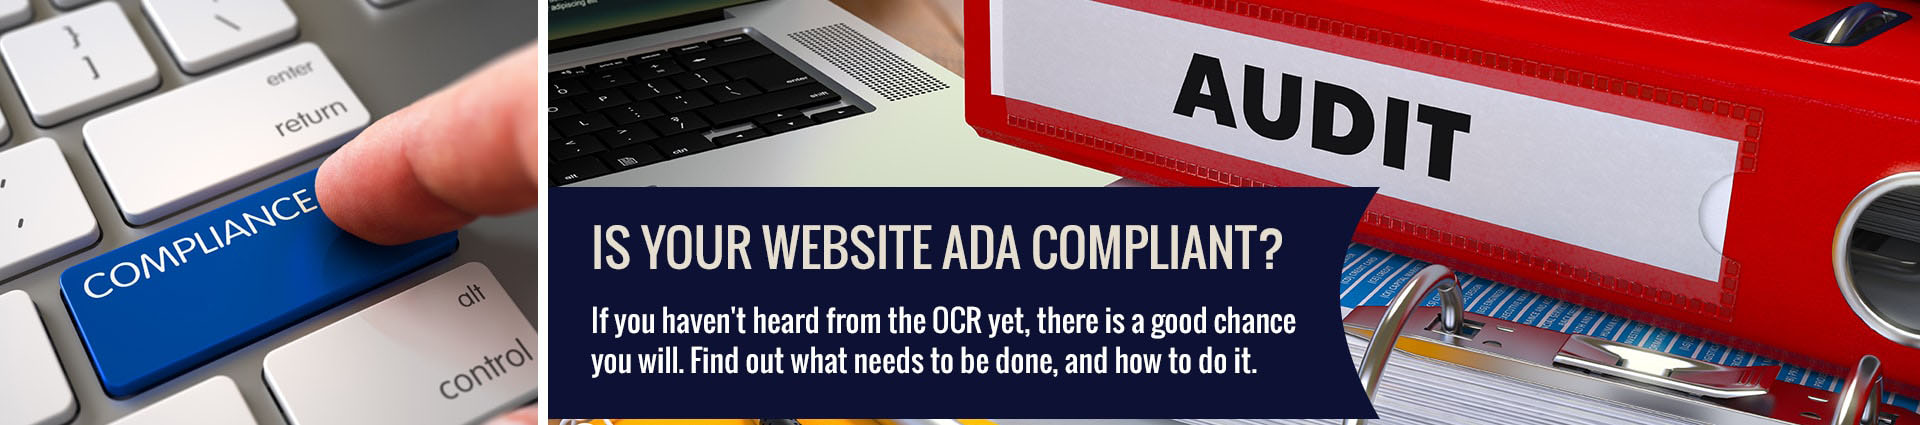 Is your website ADA compliant? If you haven't heard from OCR yet, there is a good chance you will. Find out what needs to be done, and how to do it.